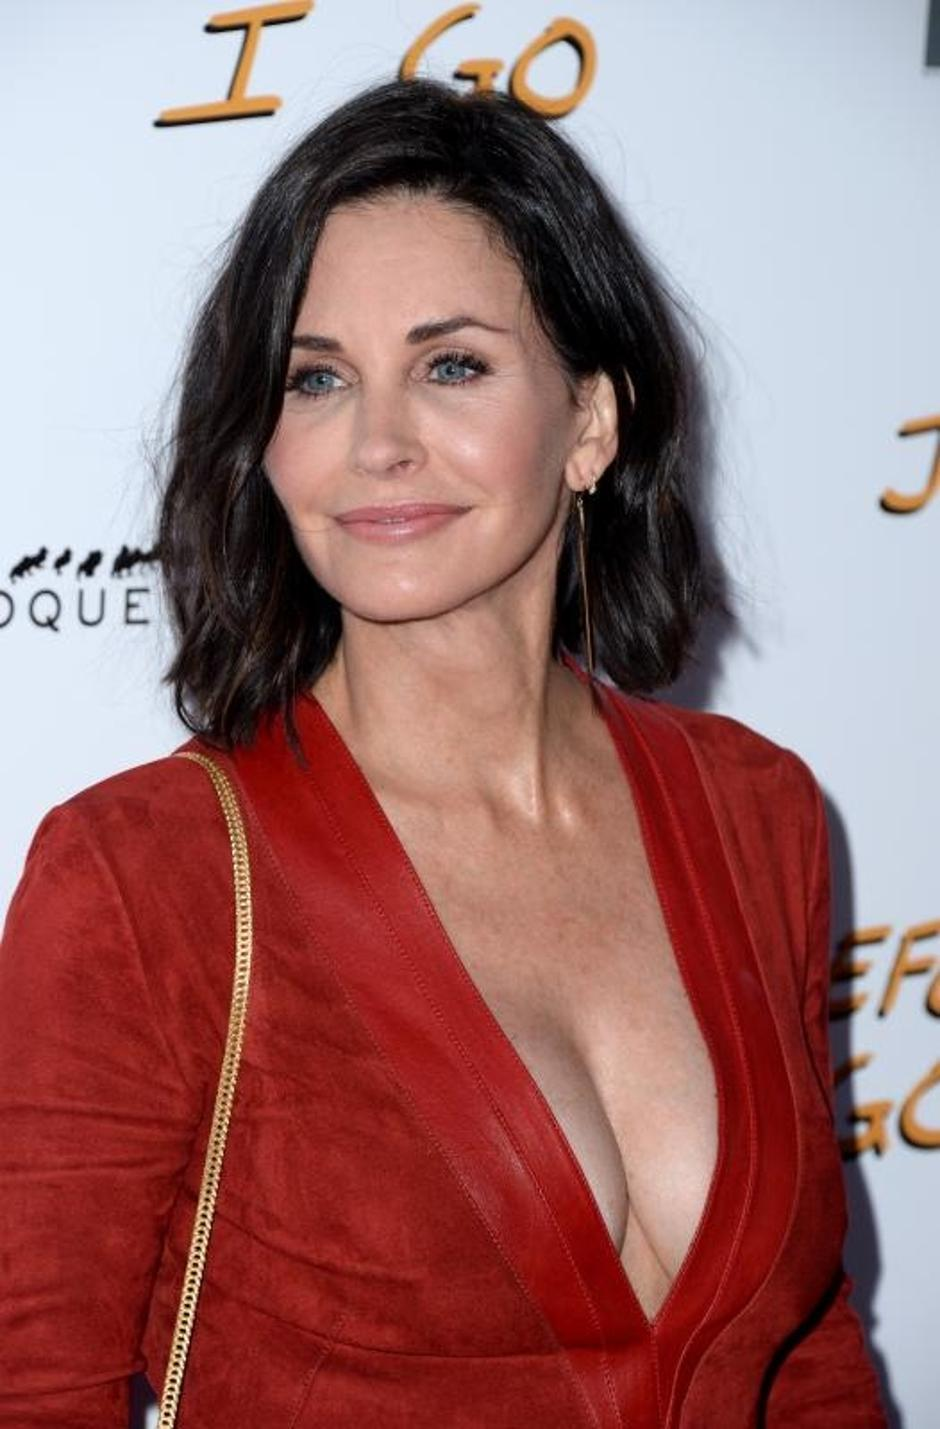 Courteney Cox | Author: Lionel Hahn/Press Association/PIXSELL